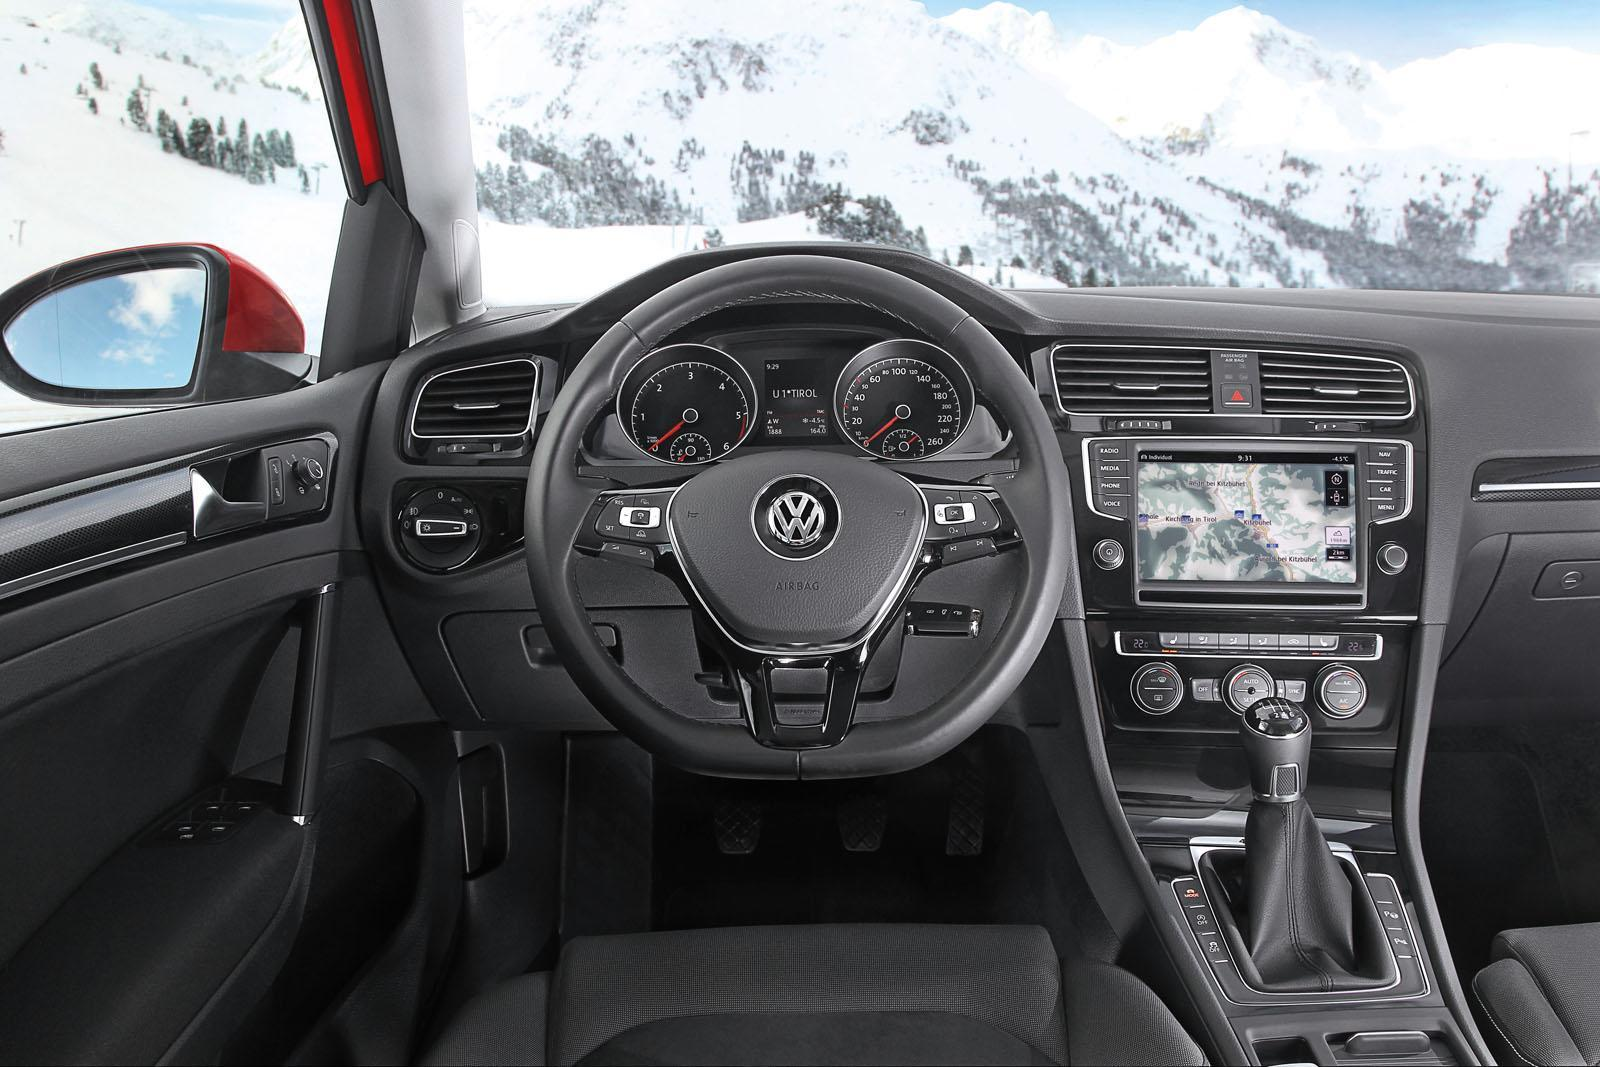 Vw golf 7 4motion 2013 la transmission 4x4 en d tails for Golf 6 gti interieur